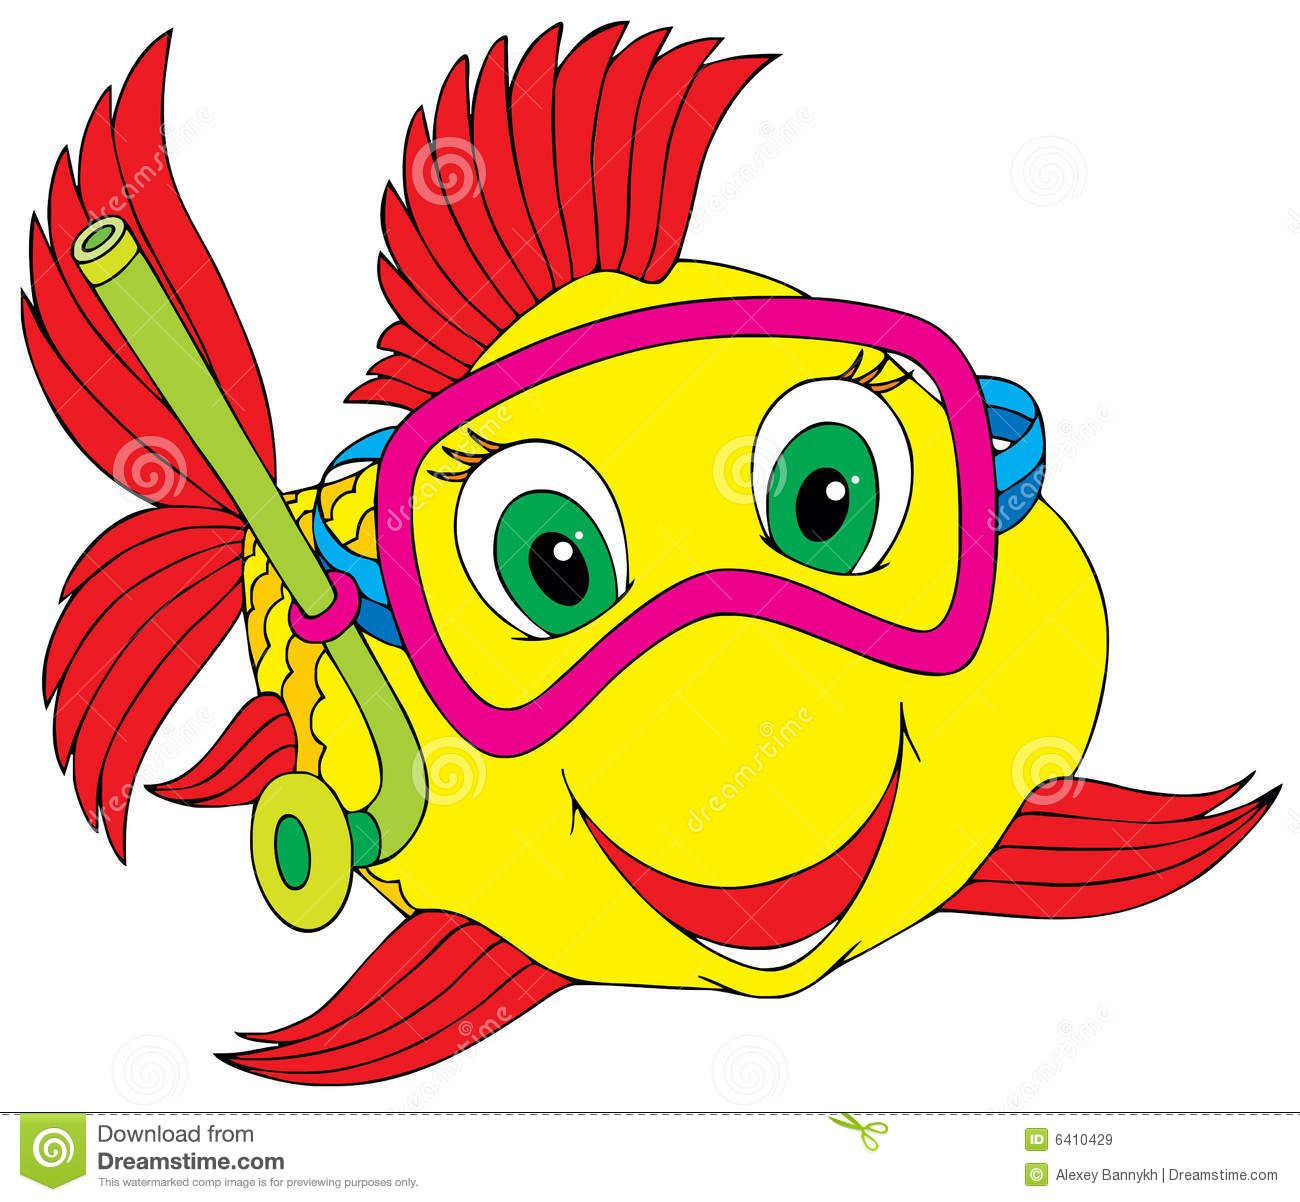 Fish clipart water. Clip art free downloads